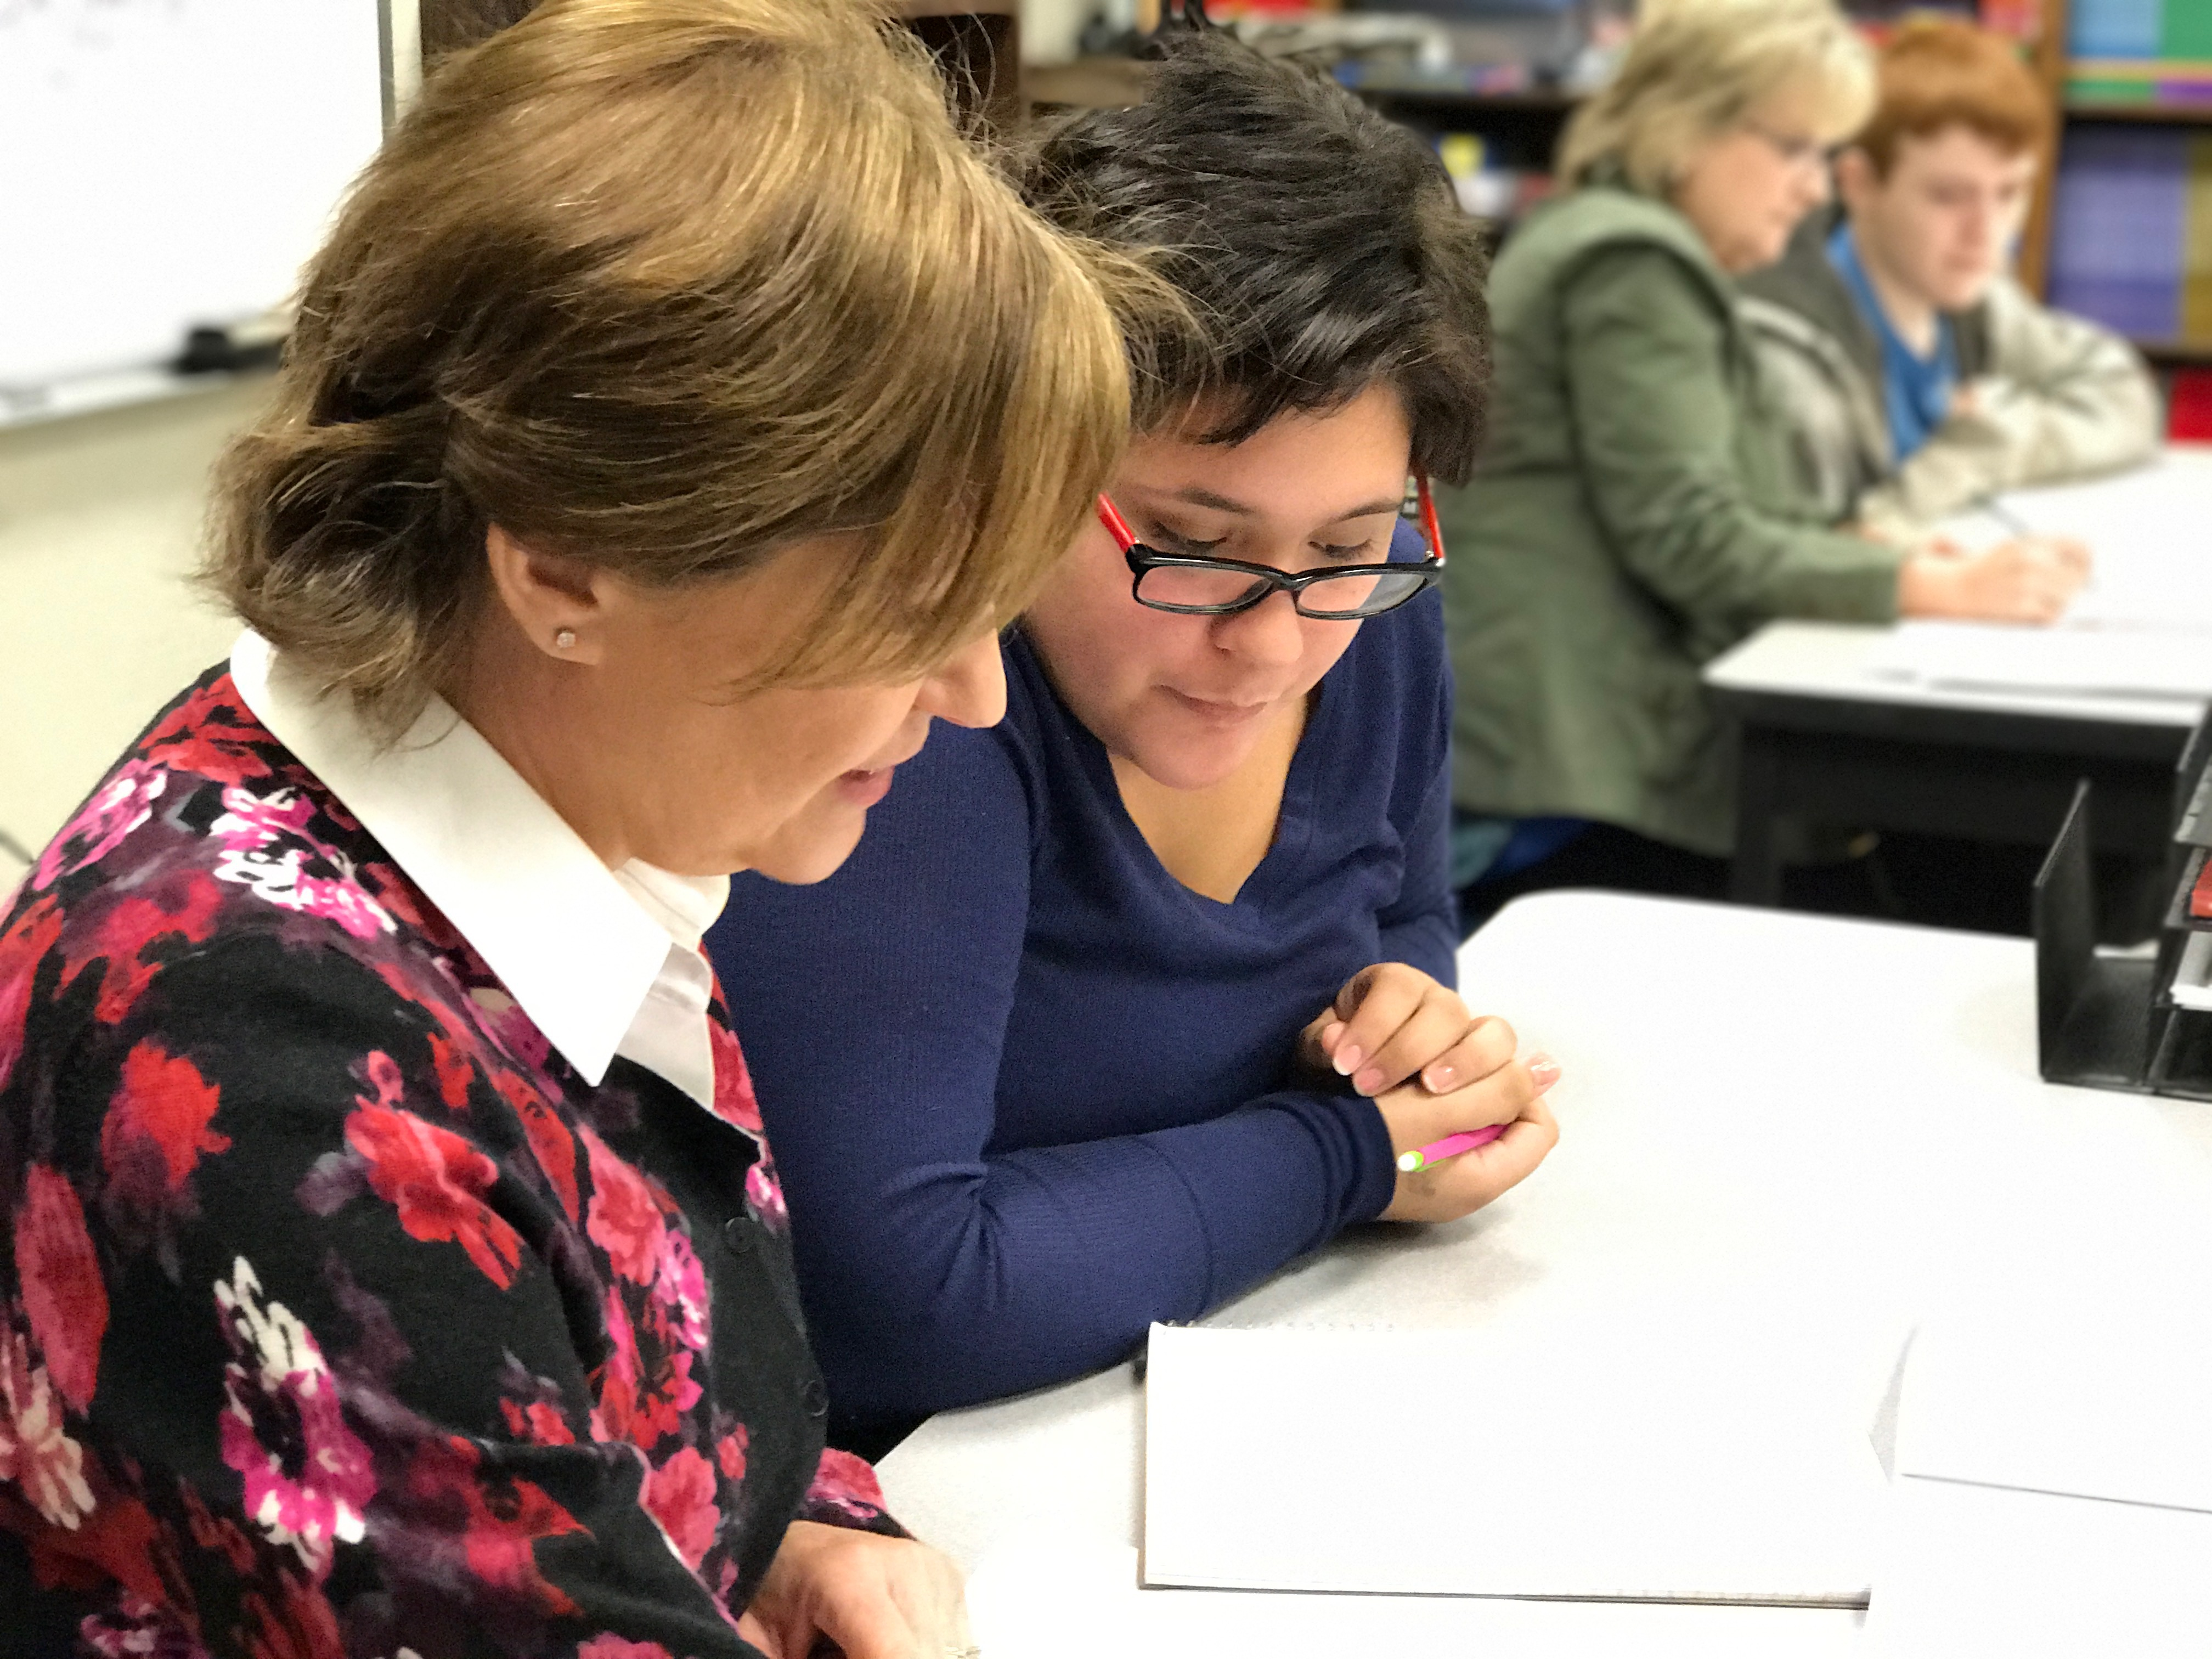 Adult Education Instructor helping student.